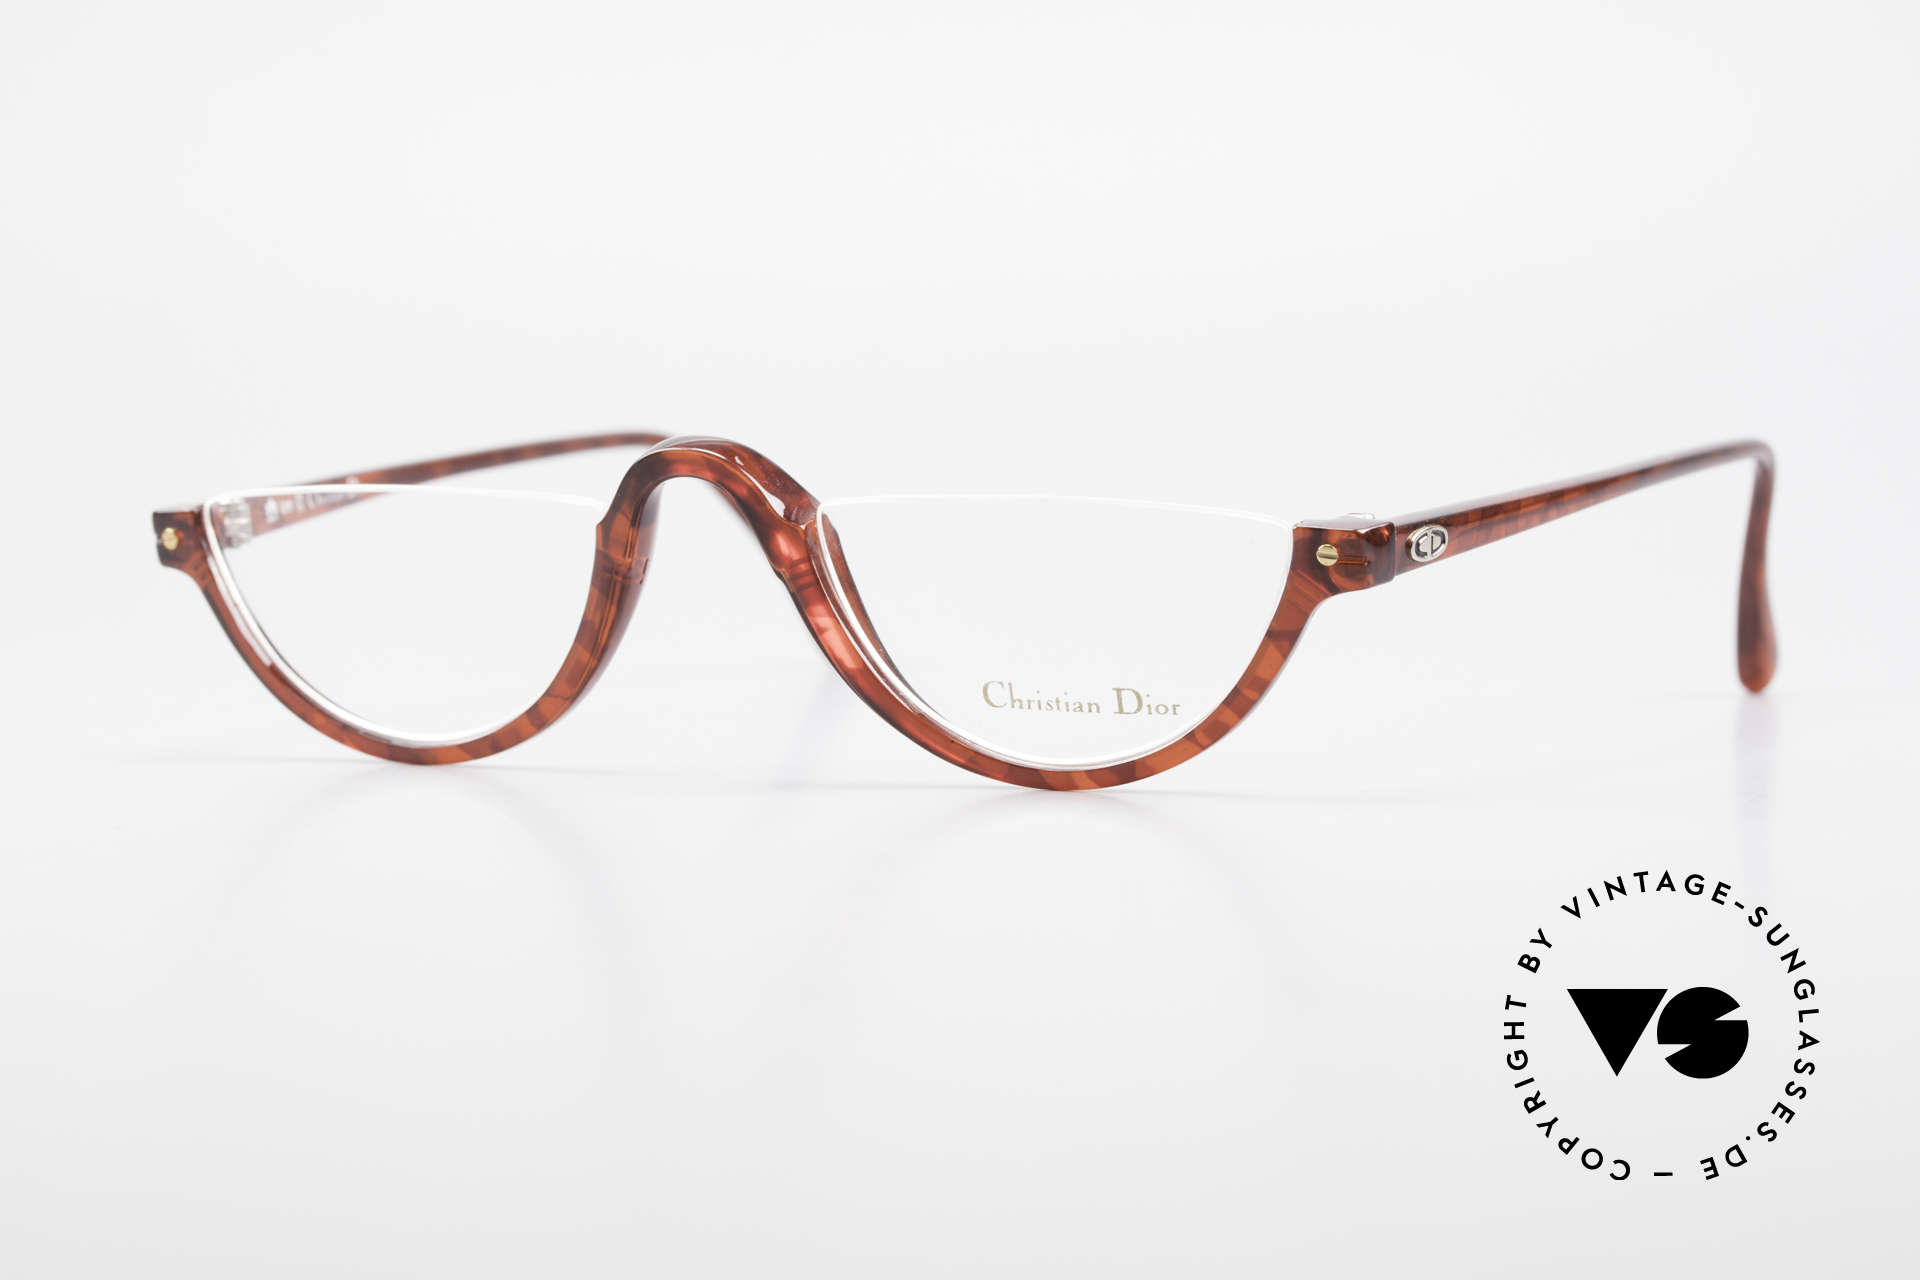 Christian Dior 2586 Reading Glasses Unisex 90's, C. DIOR reading glasses from 1992 for ladies & gents, Made for Men and Women